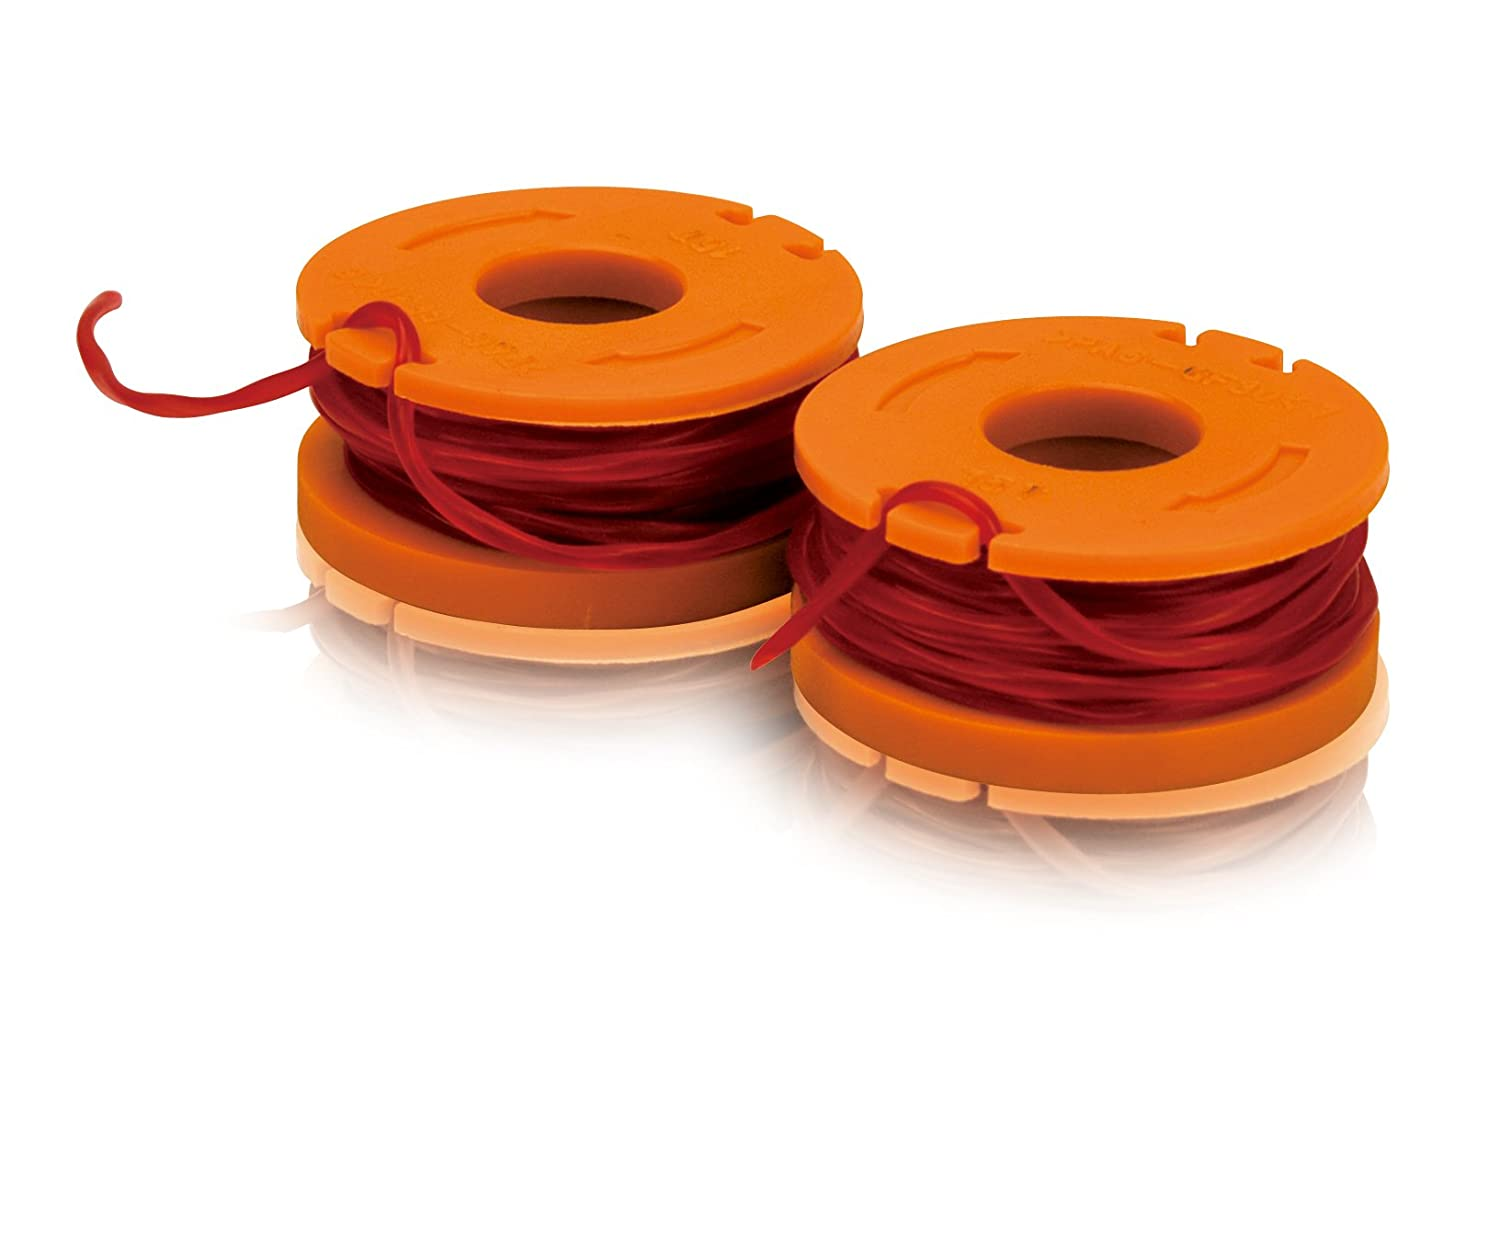 WORX WA0004 Replacement 10-Foot Grass Trimmer/Edger Spool Line 2-Pack for WG150s, WG151s, WG152, WG155, WG165, WG166, WG160, WG167, WG175